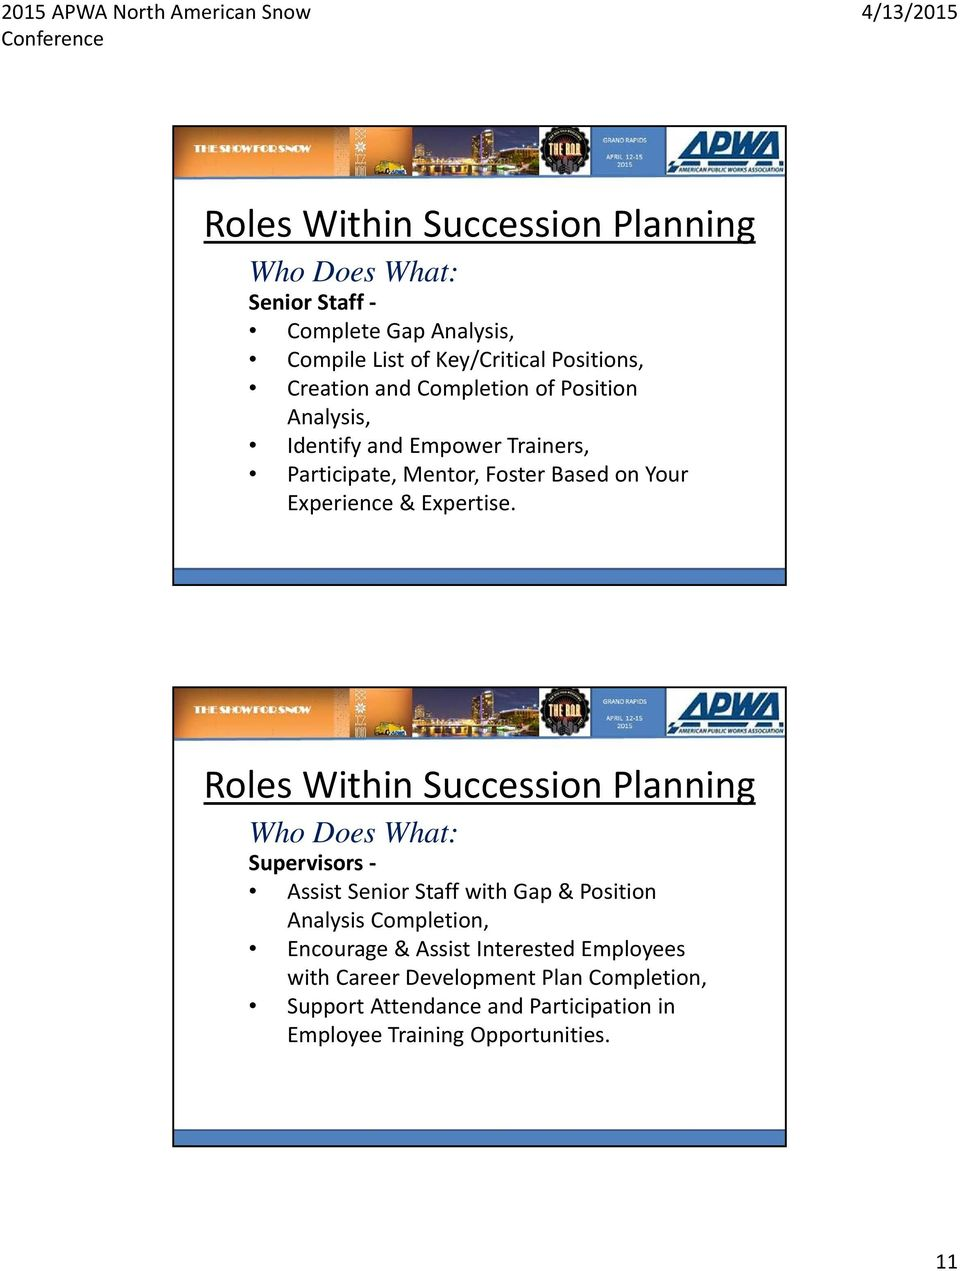 Roles Within Succession Planning Who Does What: Supervisors Assist Senior Staff with Gap & Position Analysis Completion, Encourage &